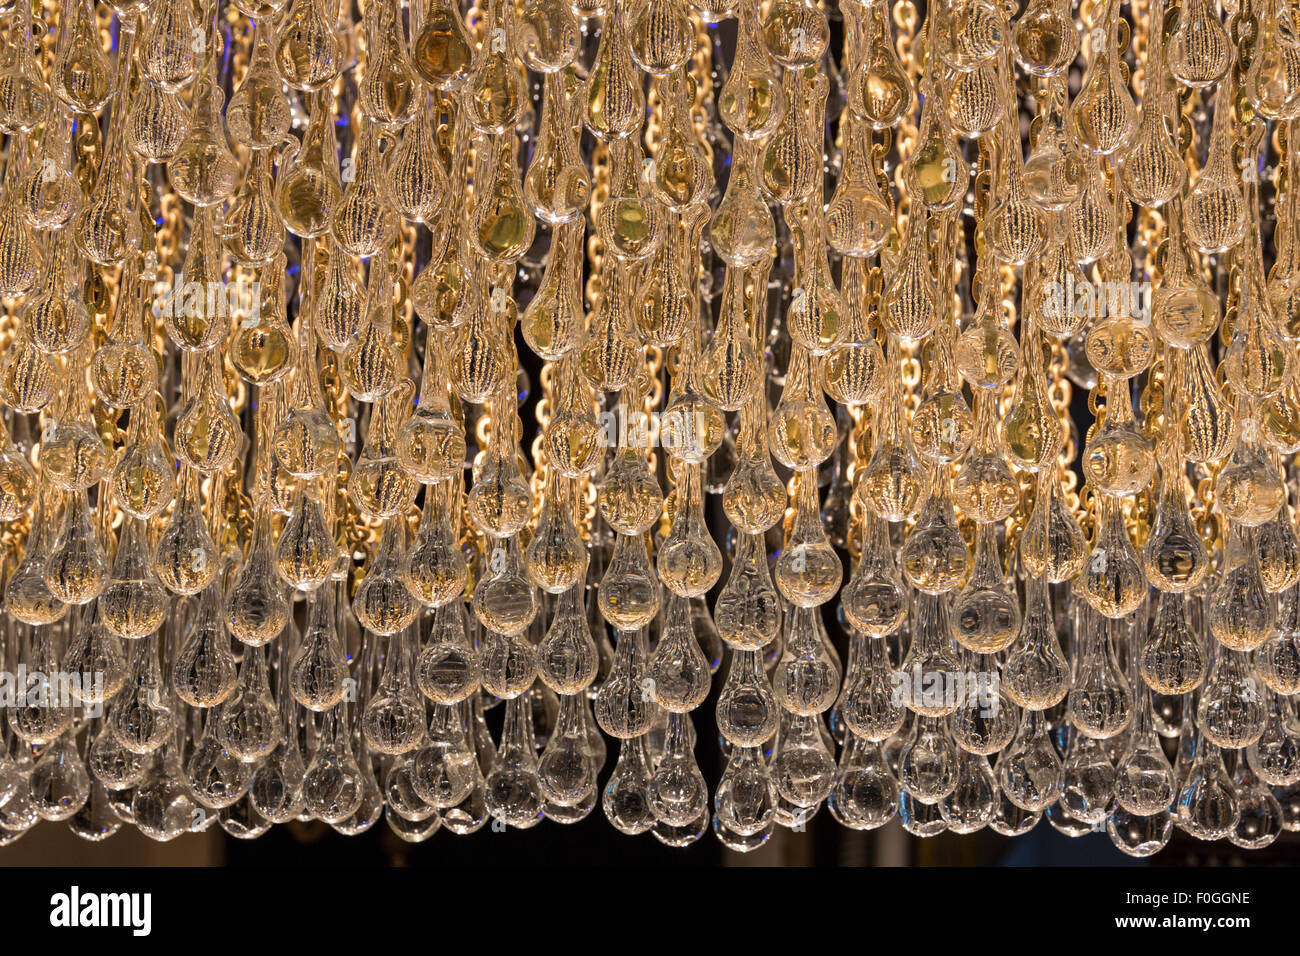 Backlit teardrop shaped glass beads of a chandelier glow at a lamp shop in the Grand Bazaar, Istanbul, Turkey. - Stock Image